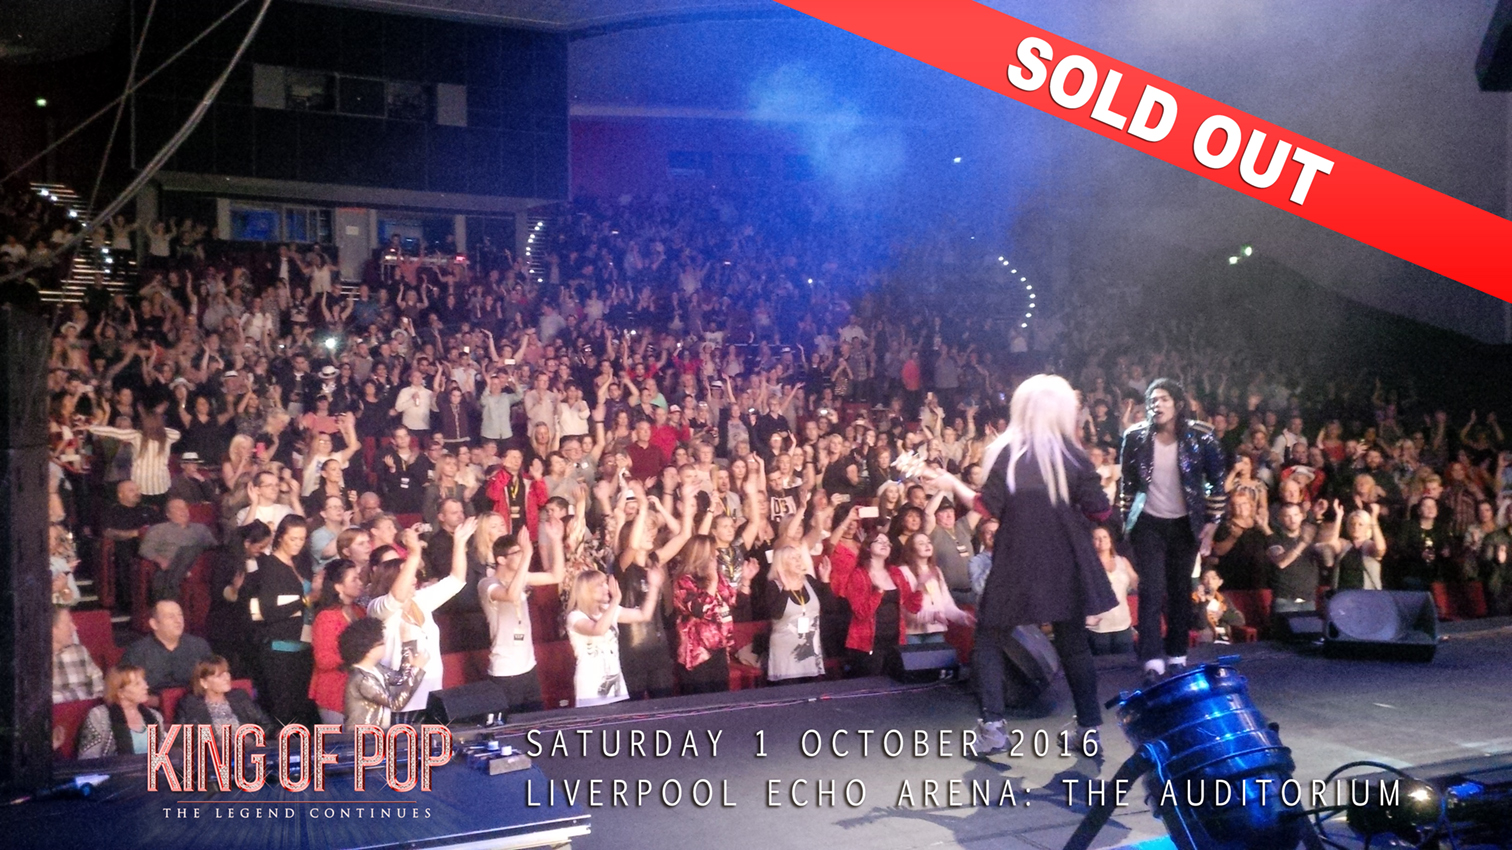 1 Oct Liverpool sold out copy